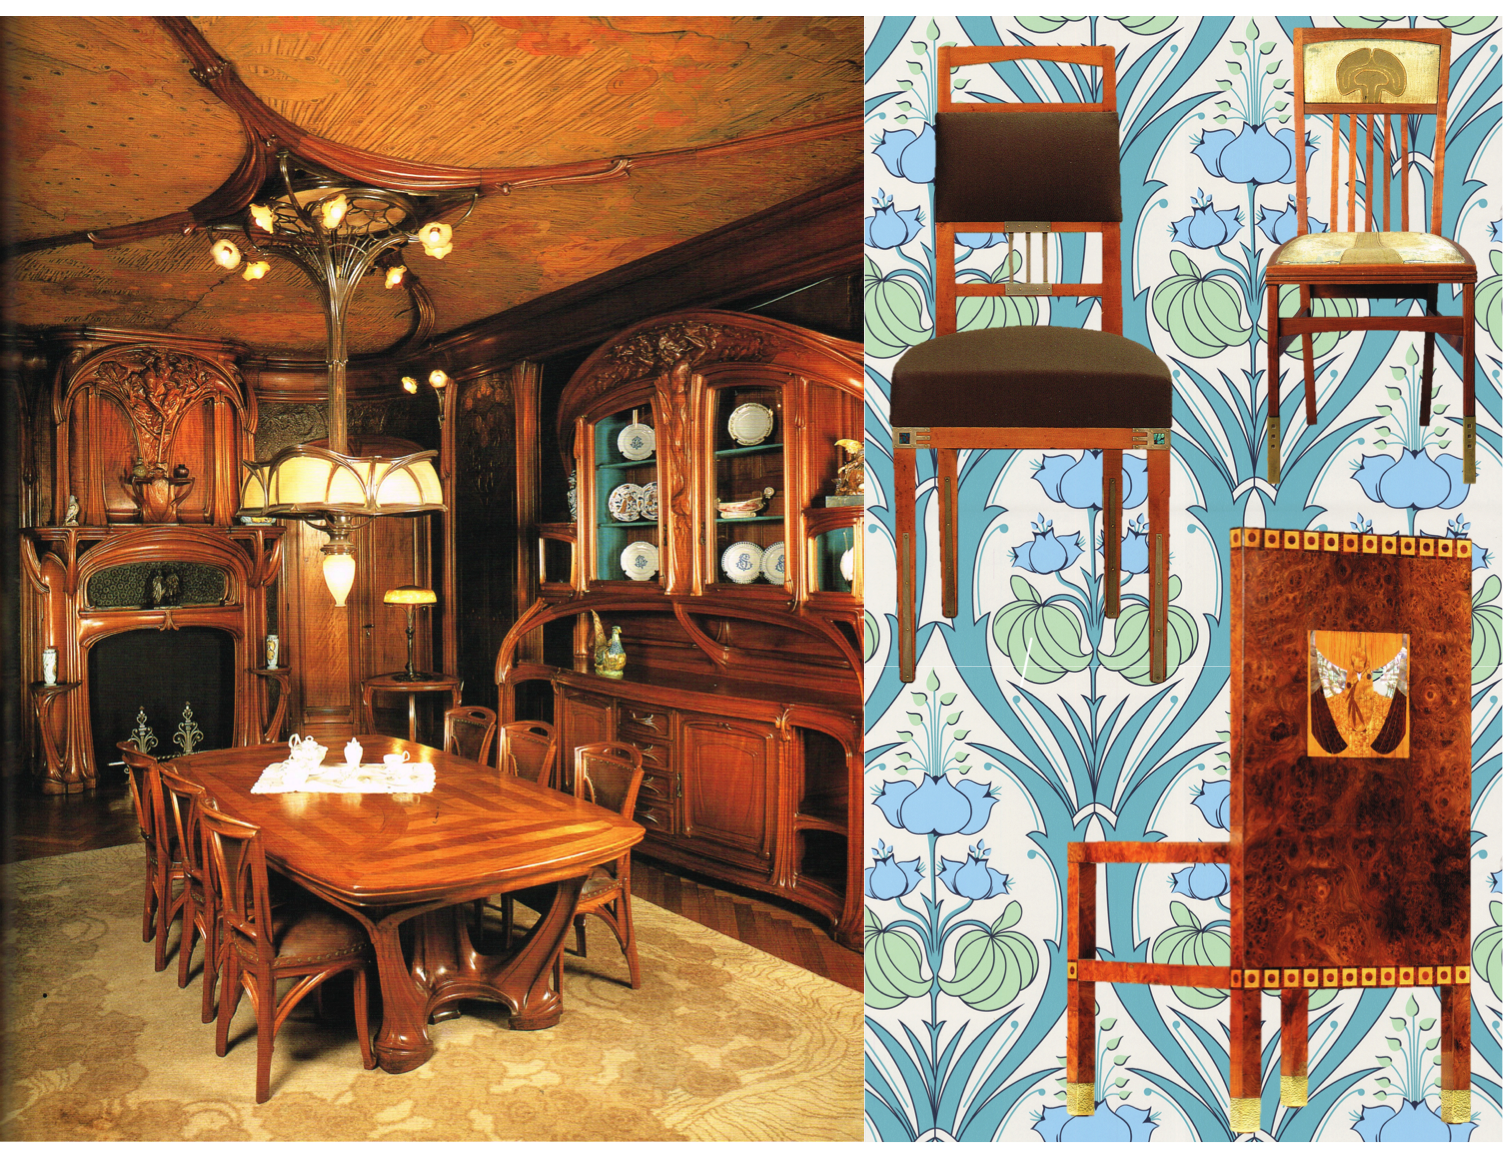 Step back into the world of early 20th century design